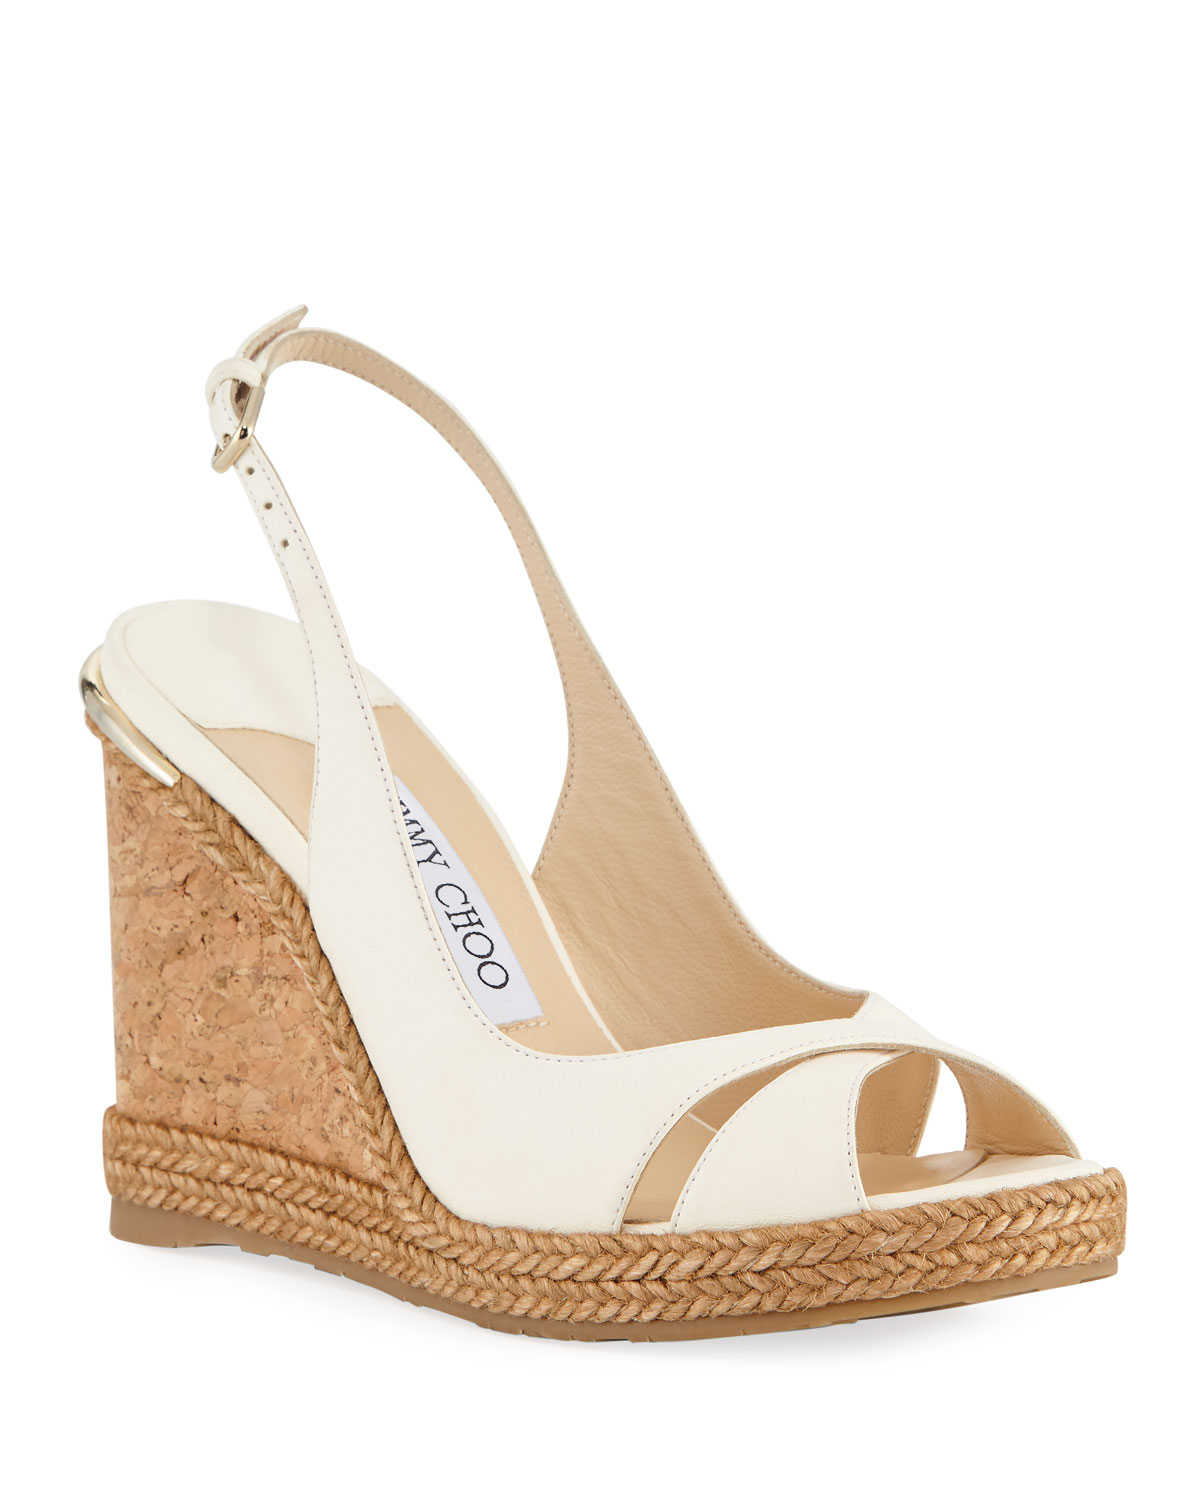 6b17b959f61 Jimmy Choo Women s Shoes and Boots at MuchosBesitos